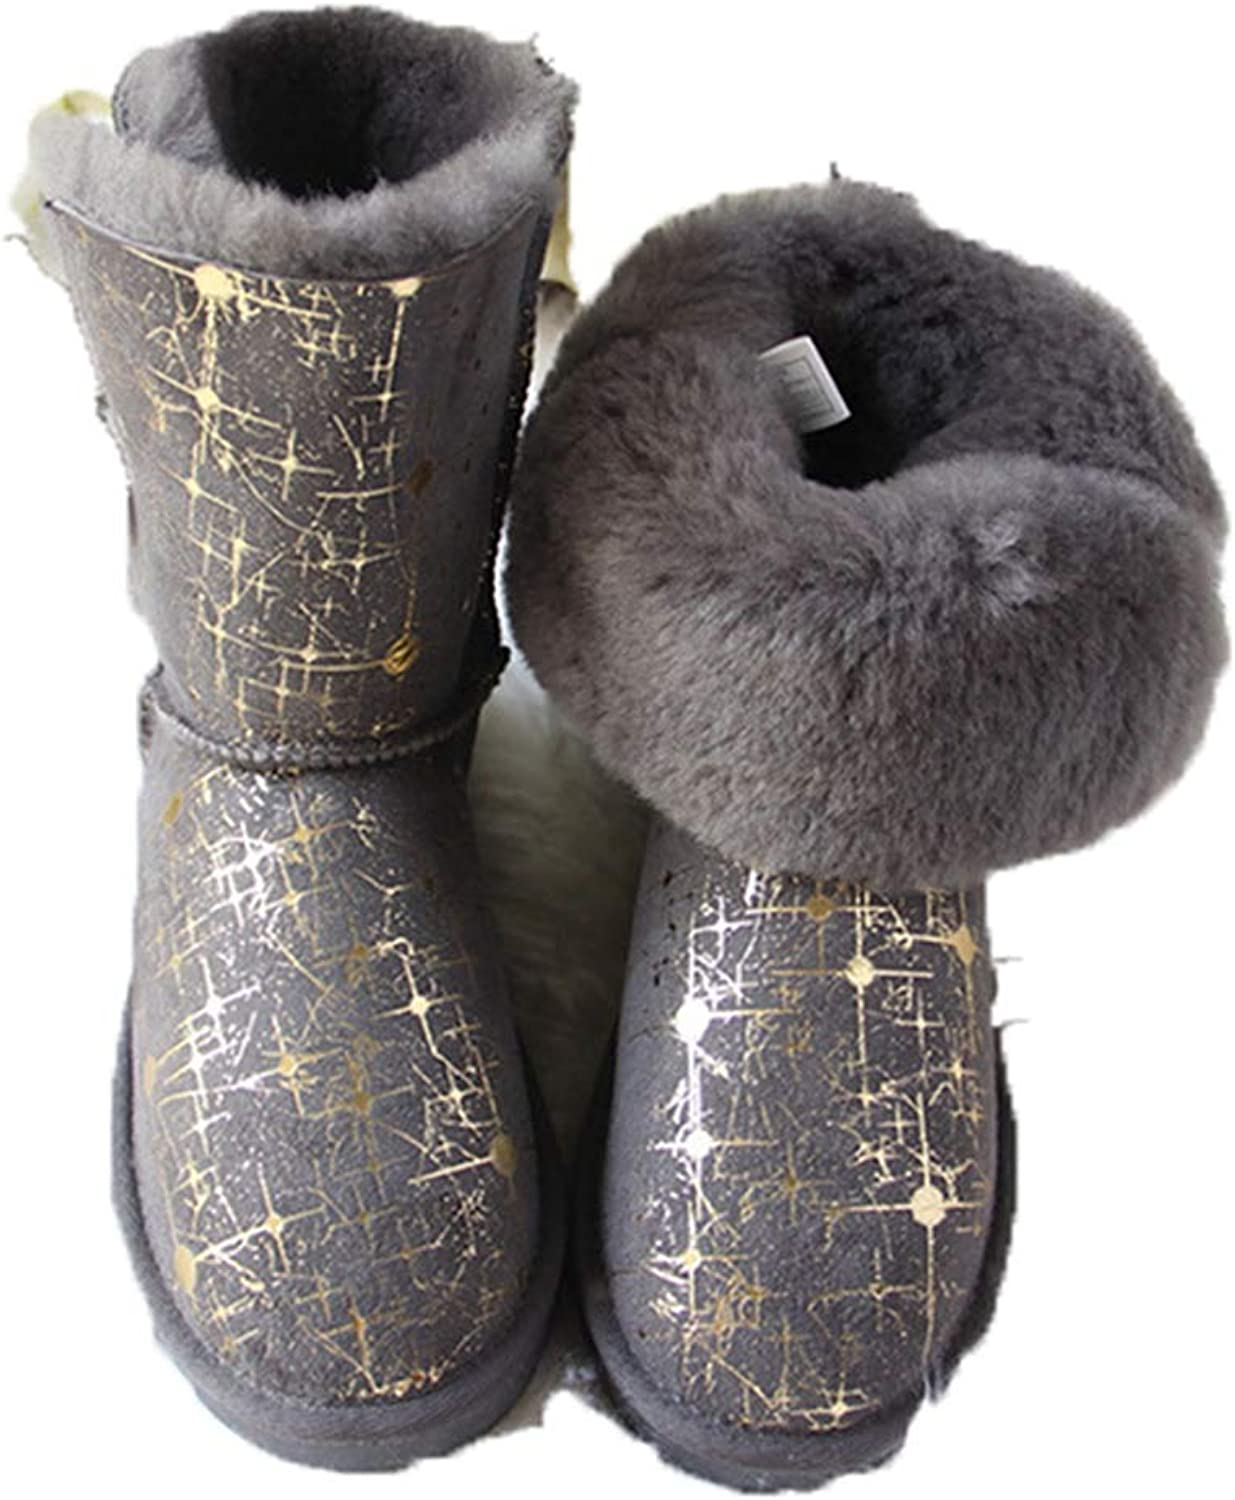 Fay Waters Women's Warm Winter Fashion Genuine Sheepskin Leather Ice Maiden Insulated Snow Boot